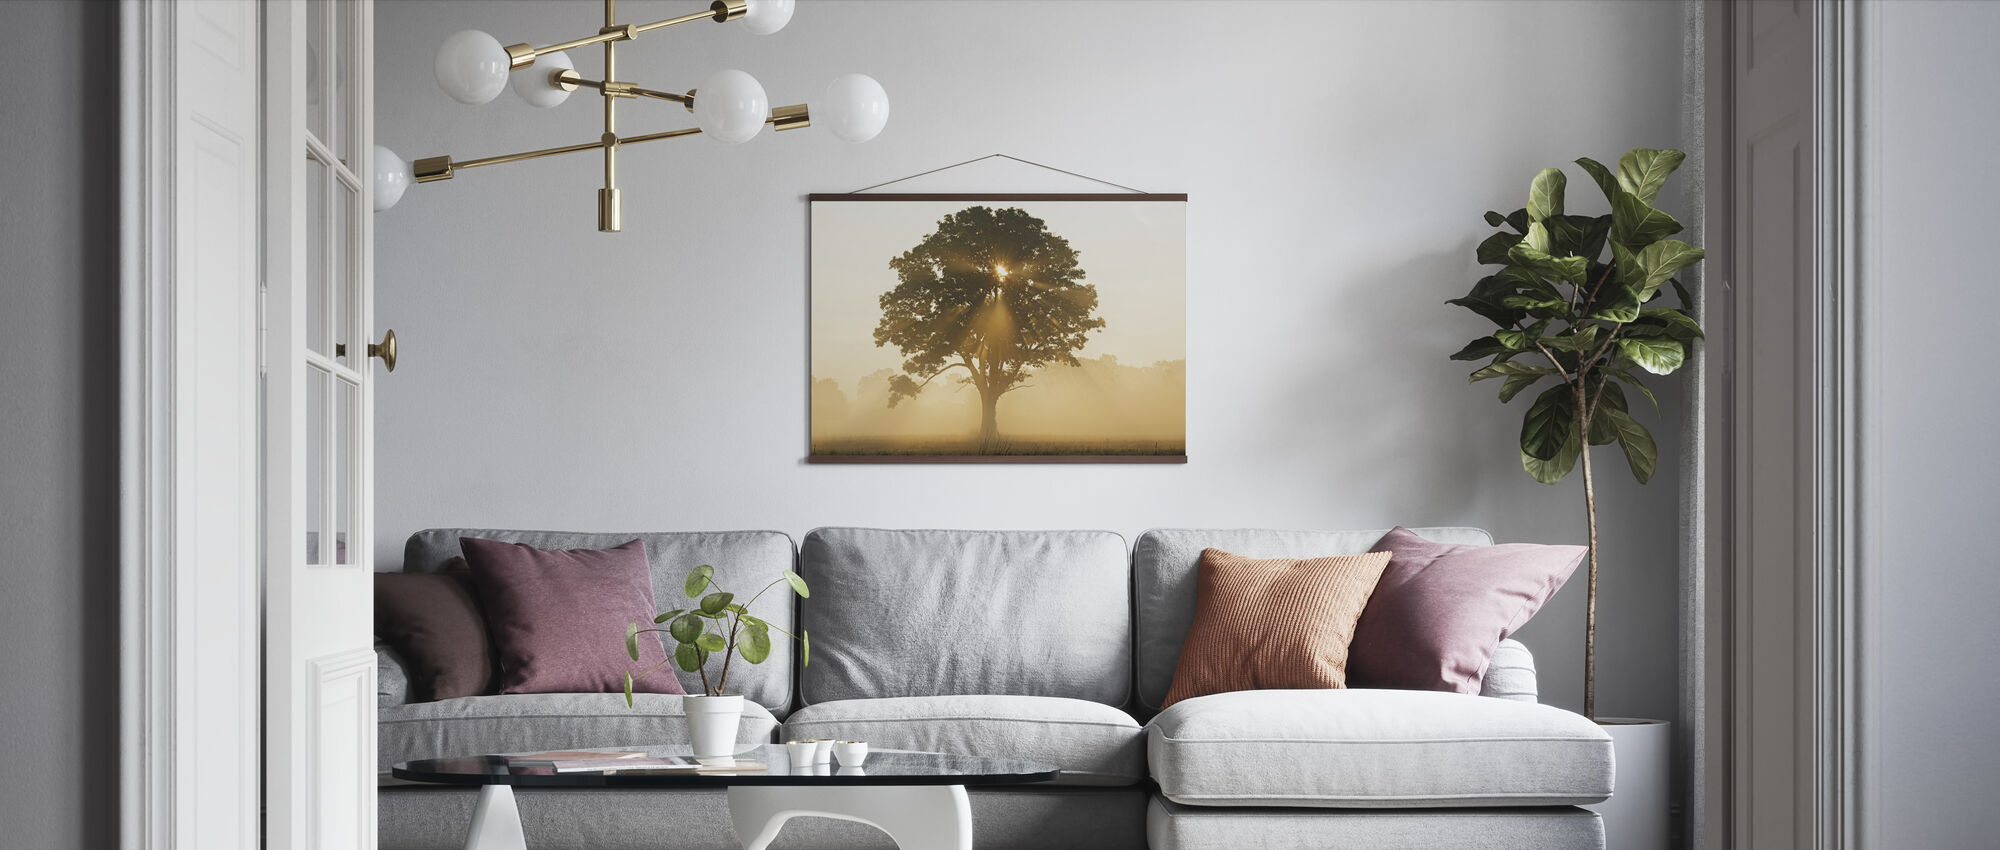 Oak Tree with Sun Rays - Poster - Living Room